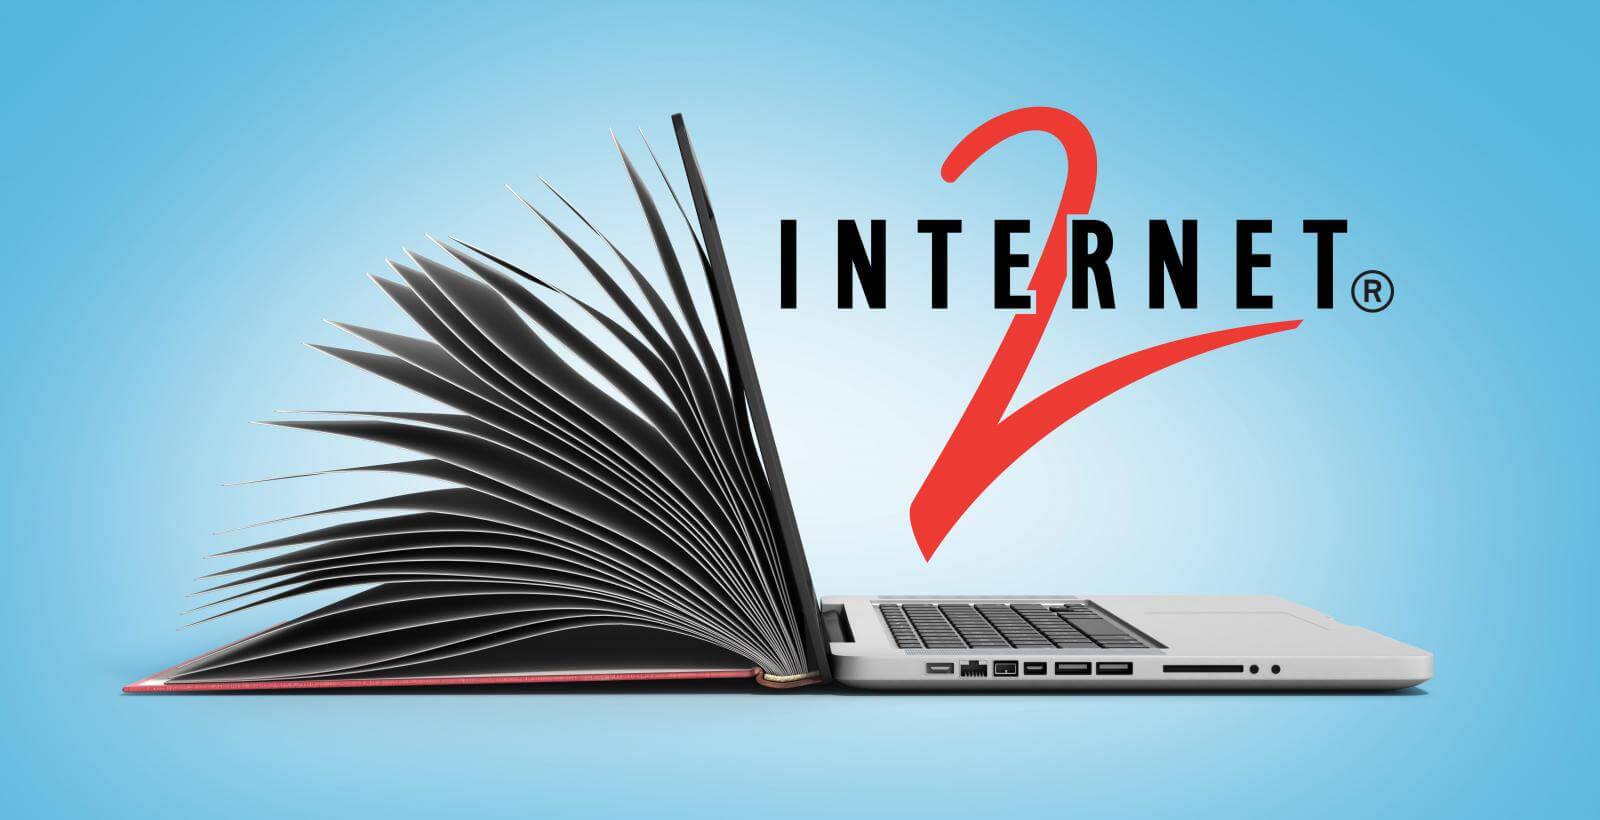 Internet2: A Collaborative Power That Needs to be Secured